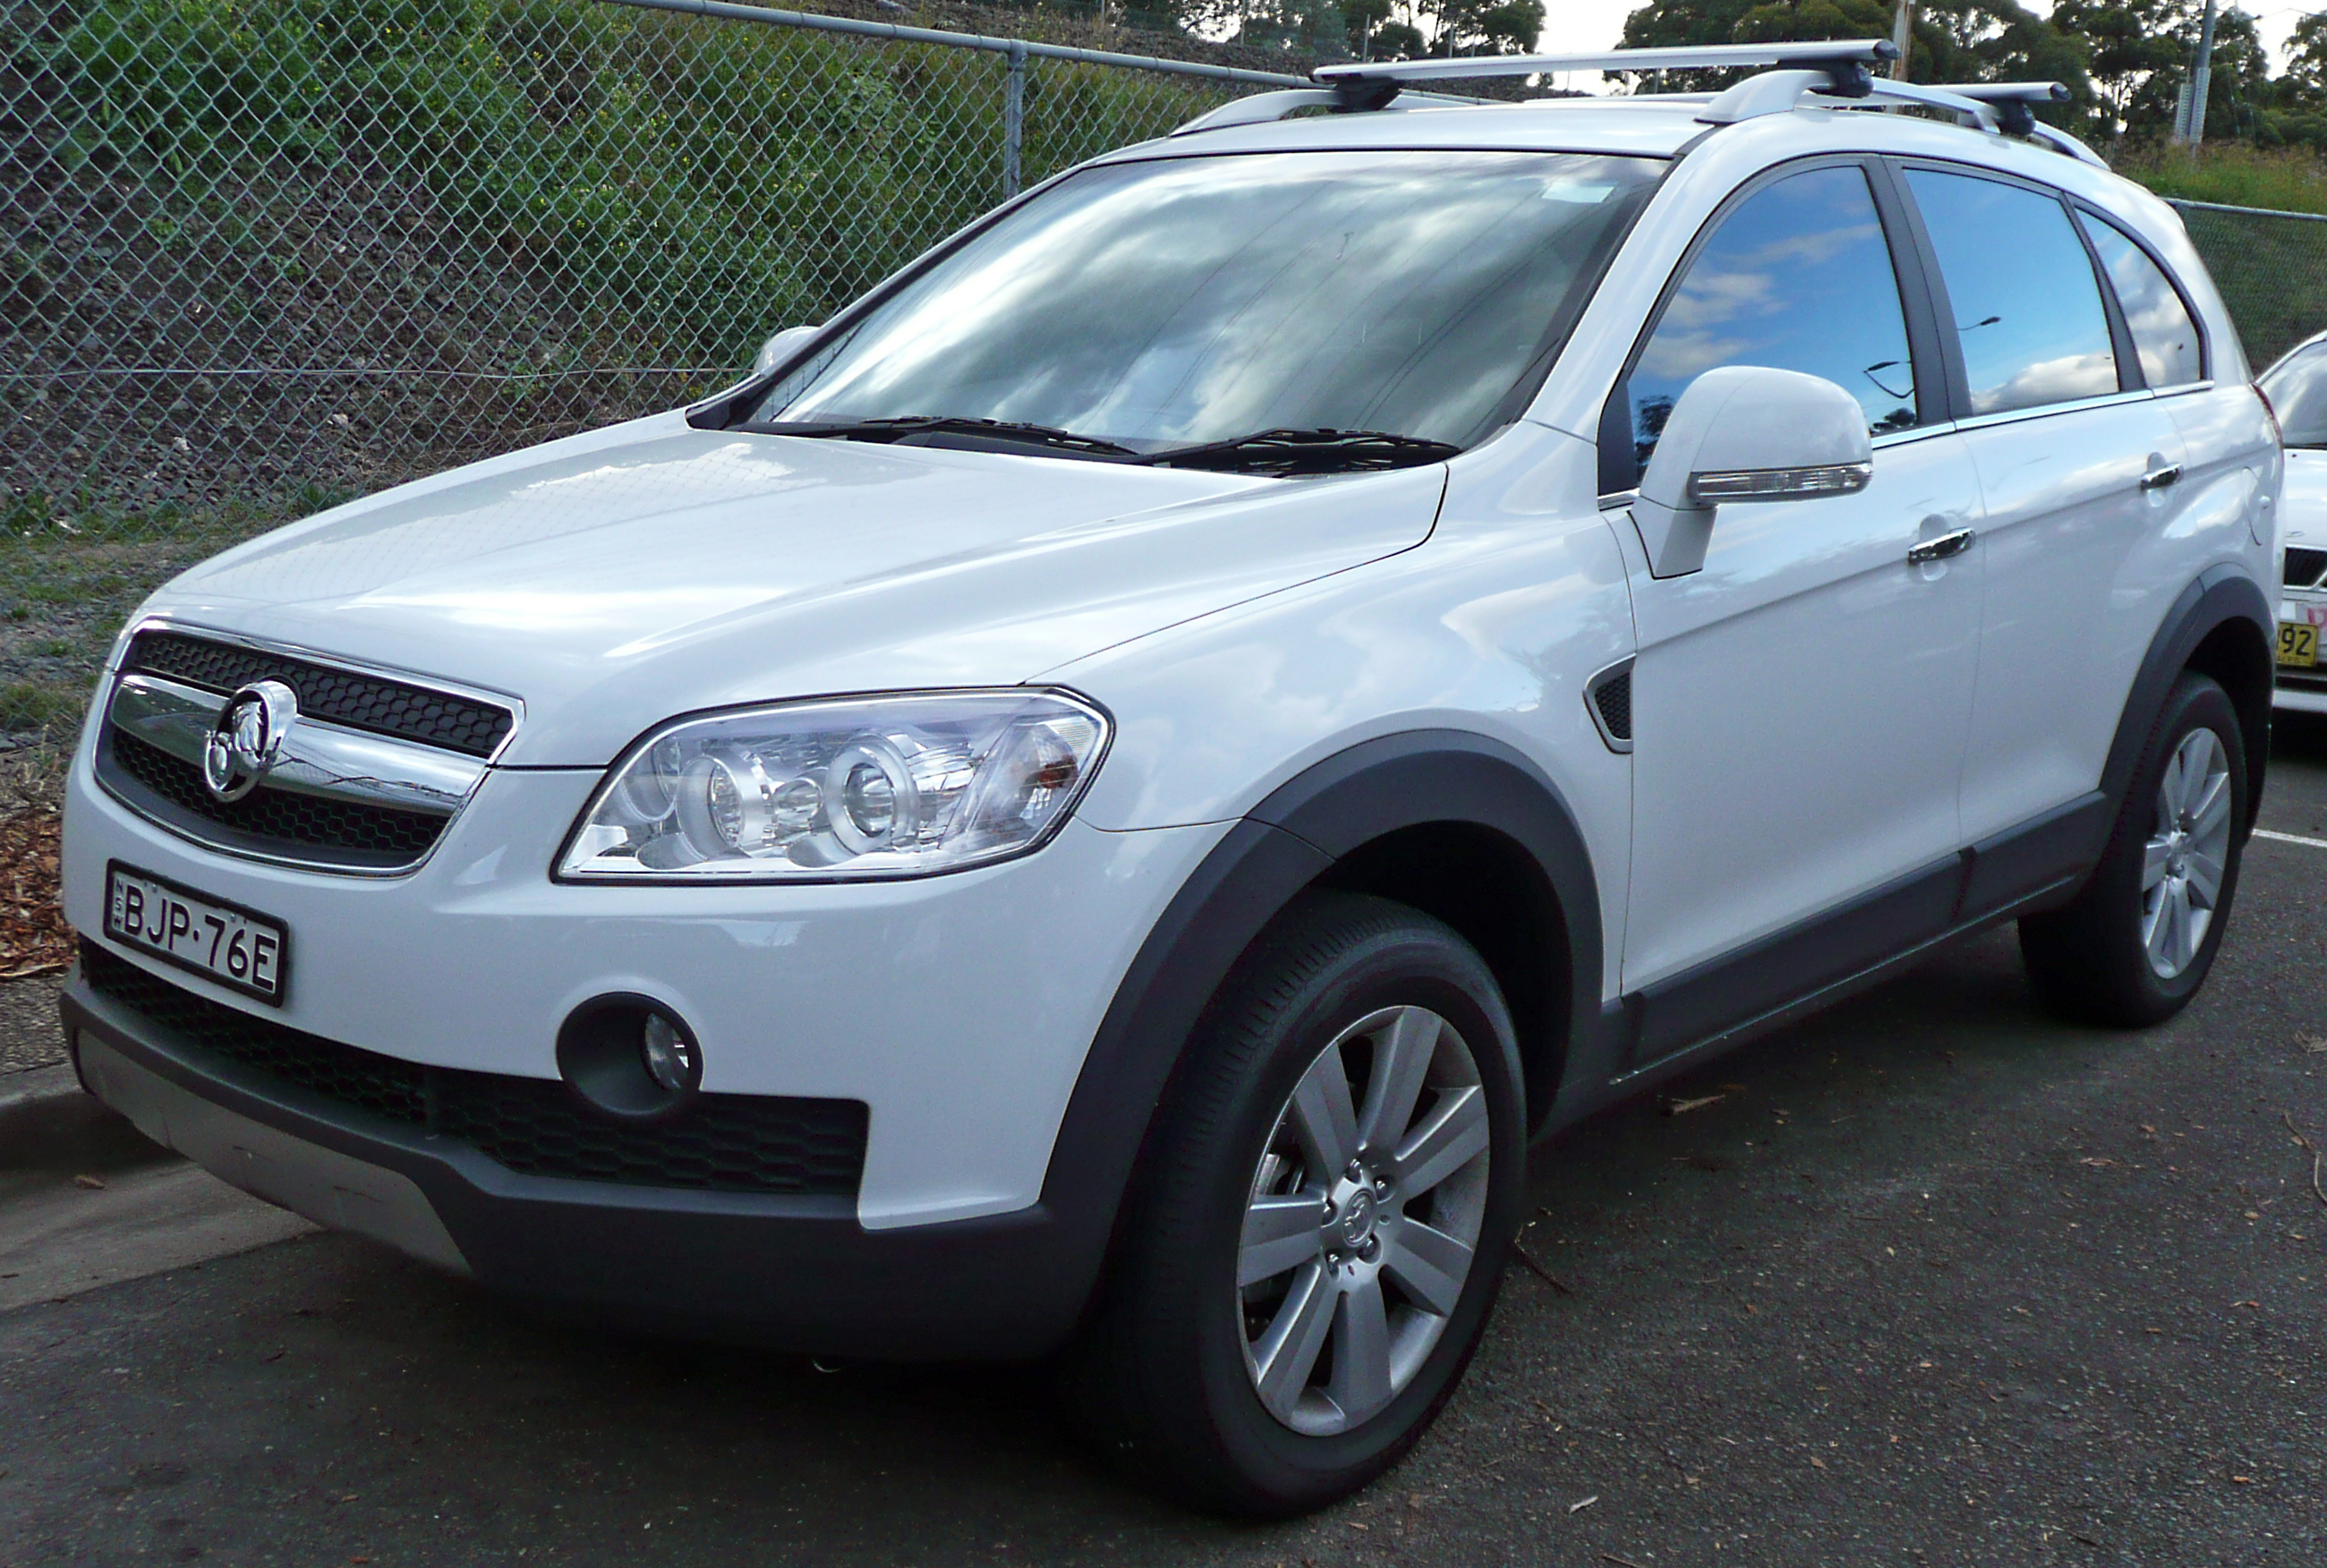 2008 Holden Captiva #15